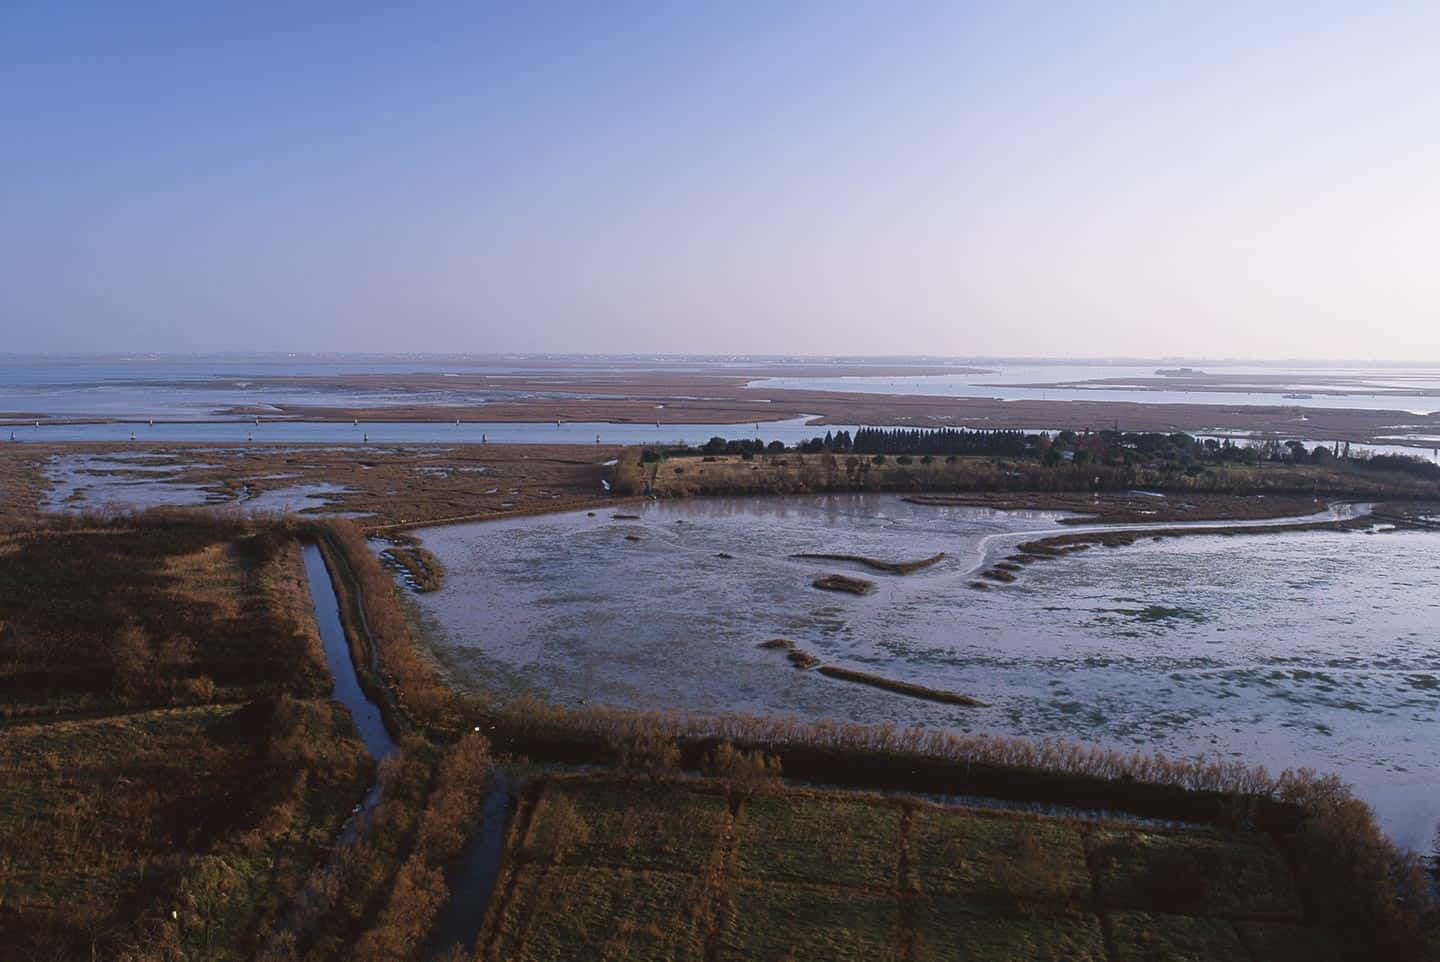 Image of the Venetian lagoon landscape from Torcello